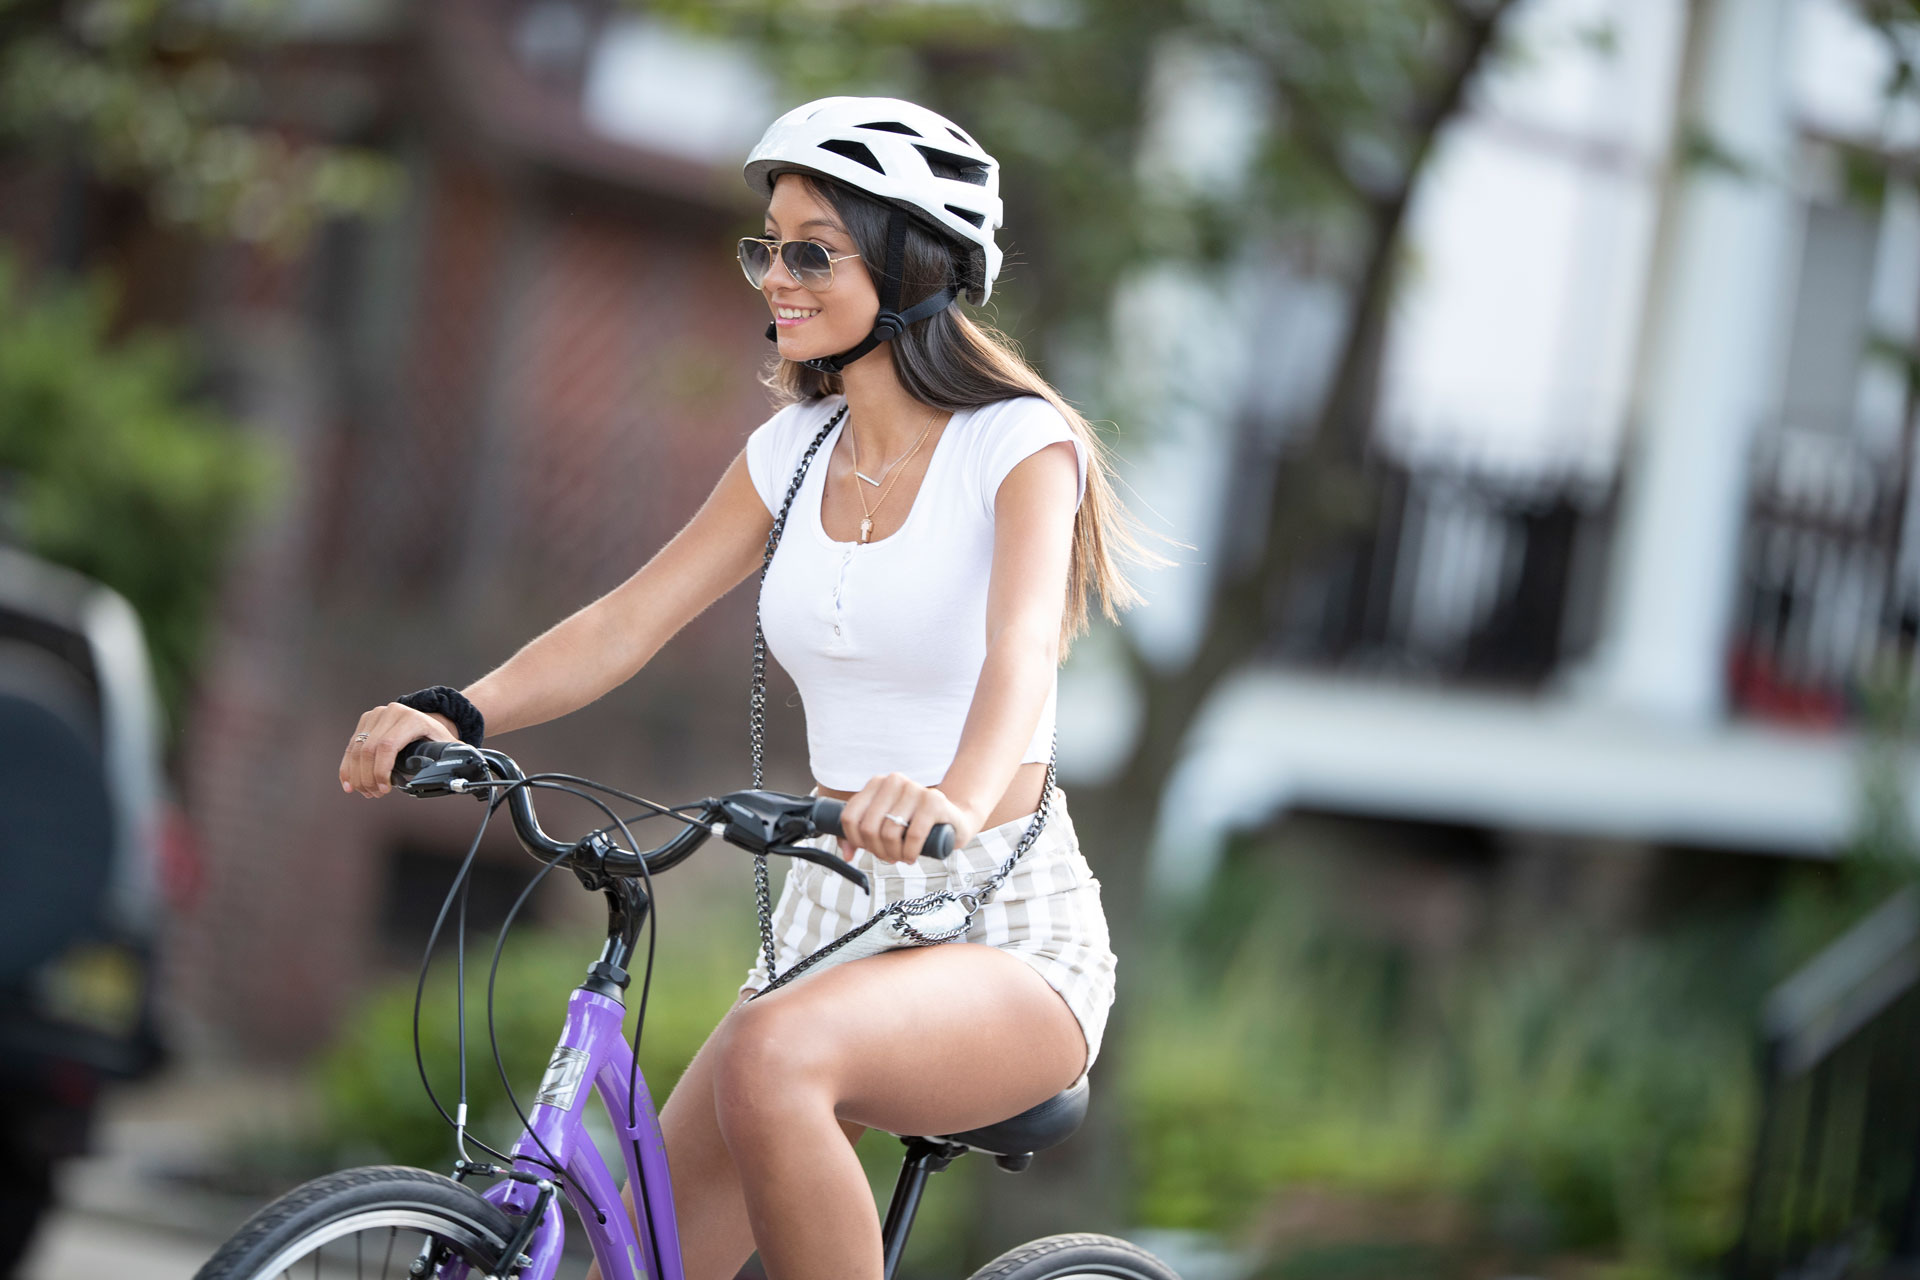 Woman riding bike with helmet on